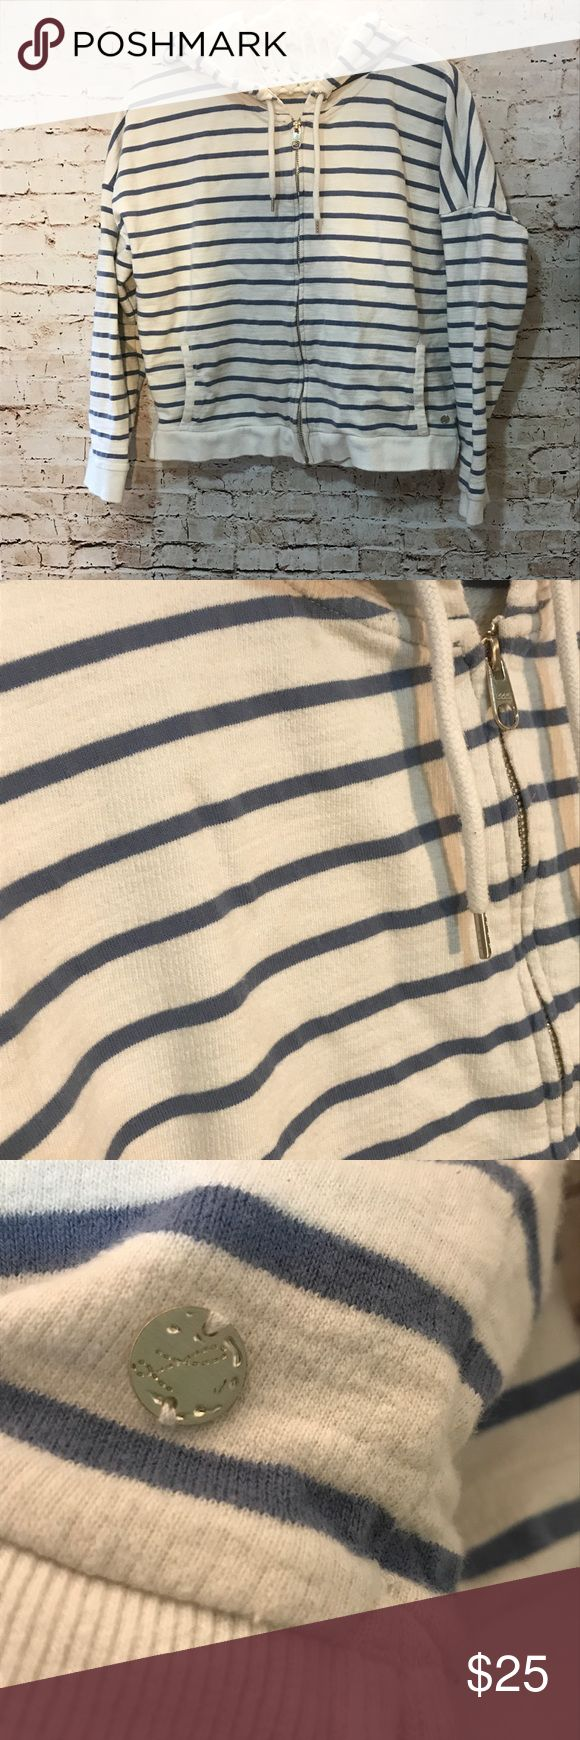 LOGG Label of Greater Good Zip up hoodie Size medium Chambray blue color and white striped zip up LOGG hoodie. Excellent condition only worn a handful of times! l.o.g.g. for h&m Tops Sweatshirts & Hoodies